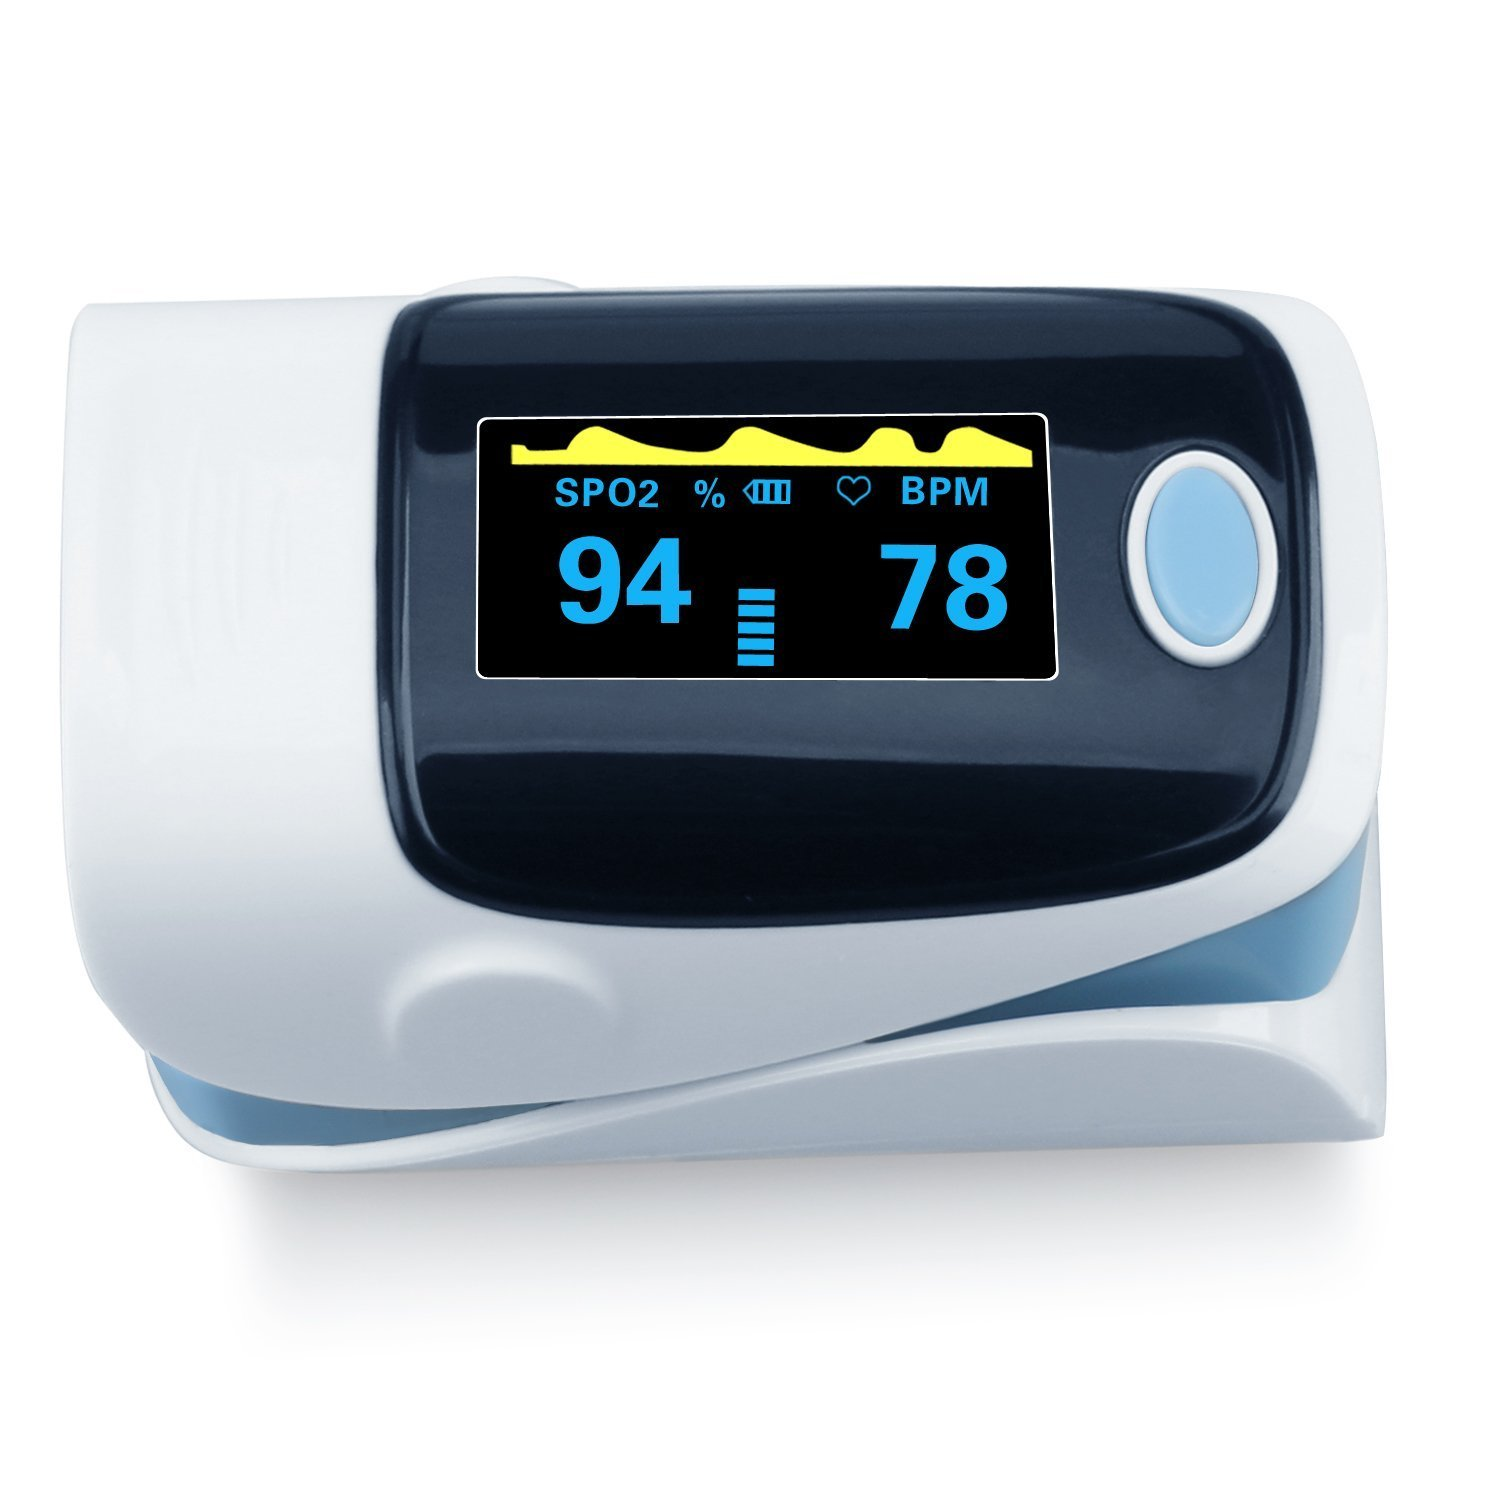 OLG- Our Life Guardian Portable Pulse Oximeter Instant Read Digital Display Fingertip Oxygen and Pulse Sensor with Alarm SPO2 For Home, Hospital